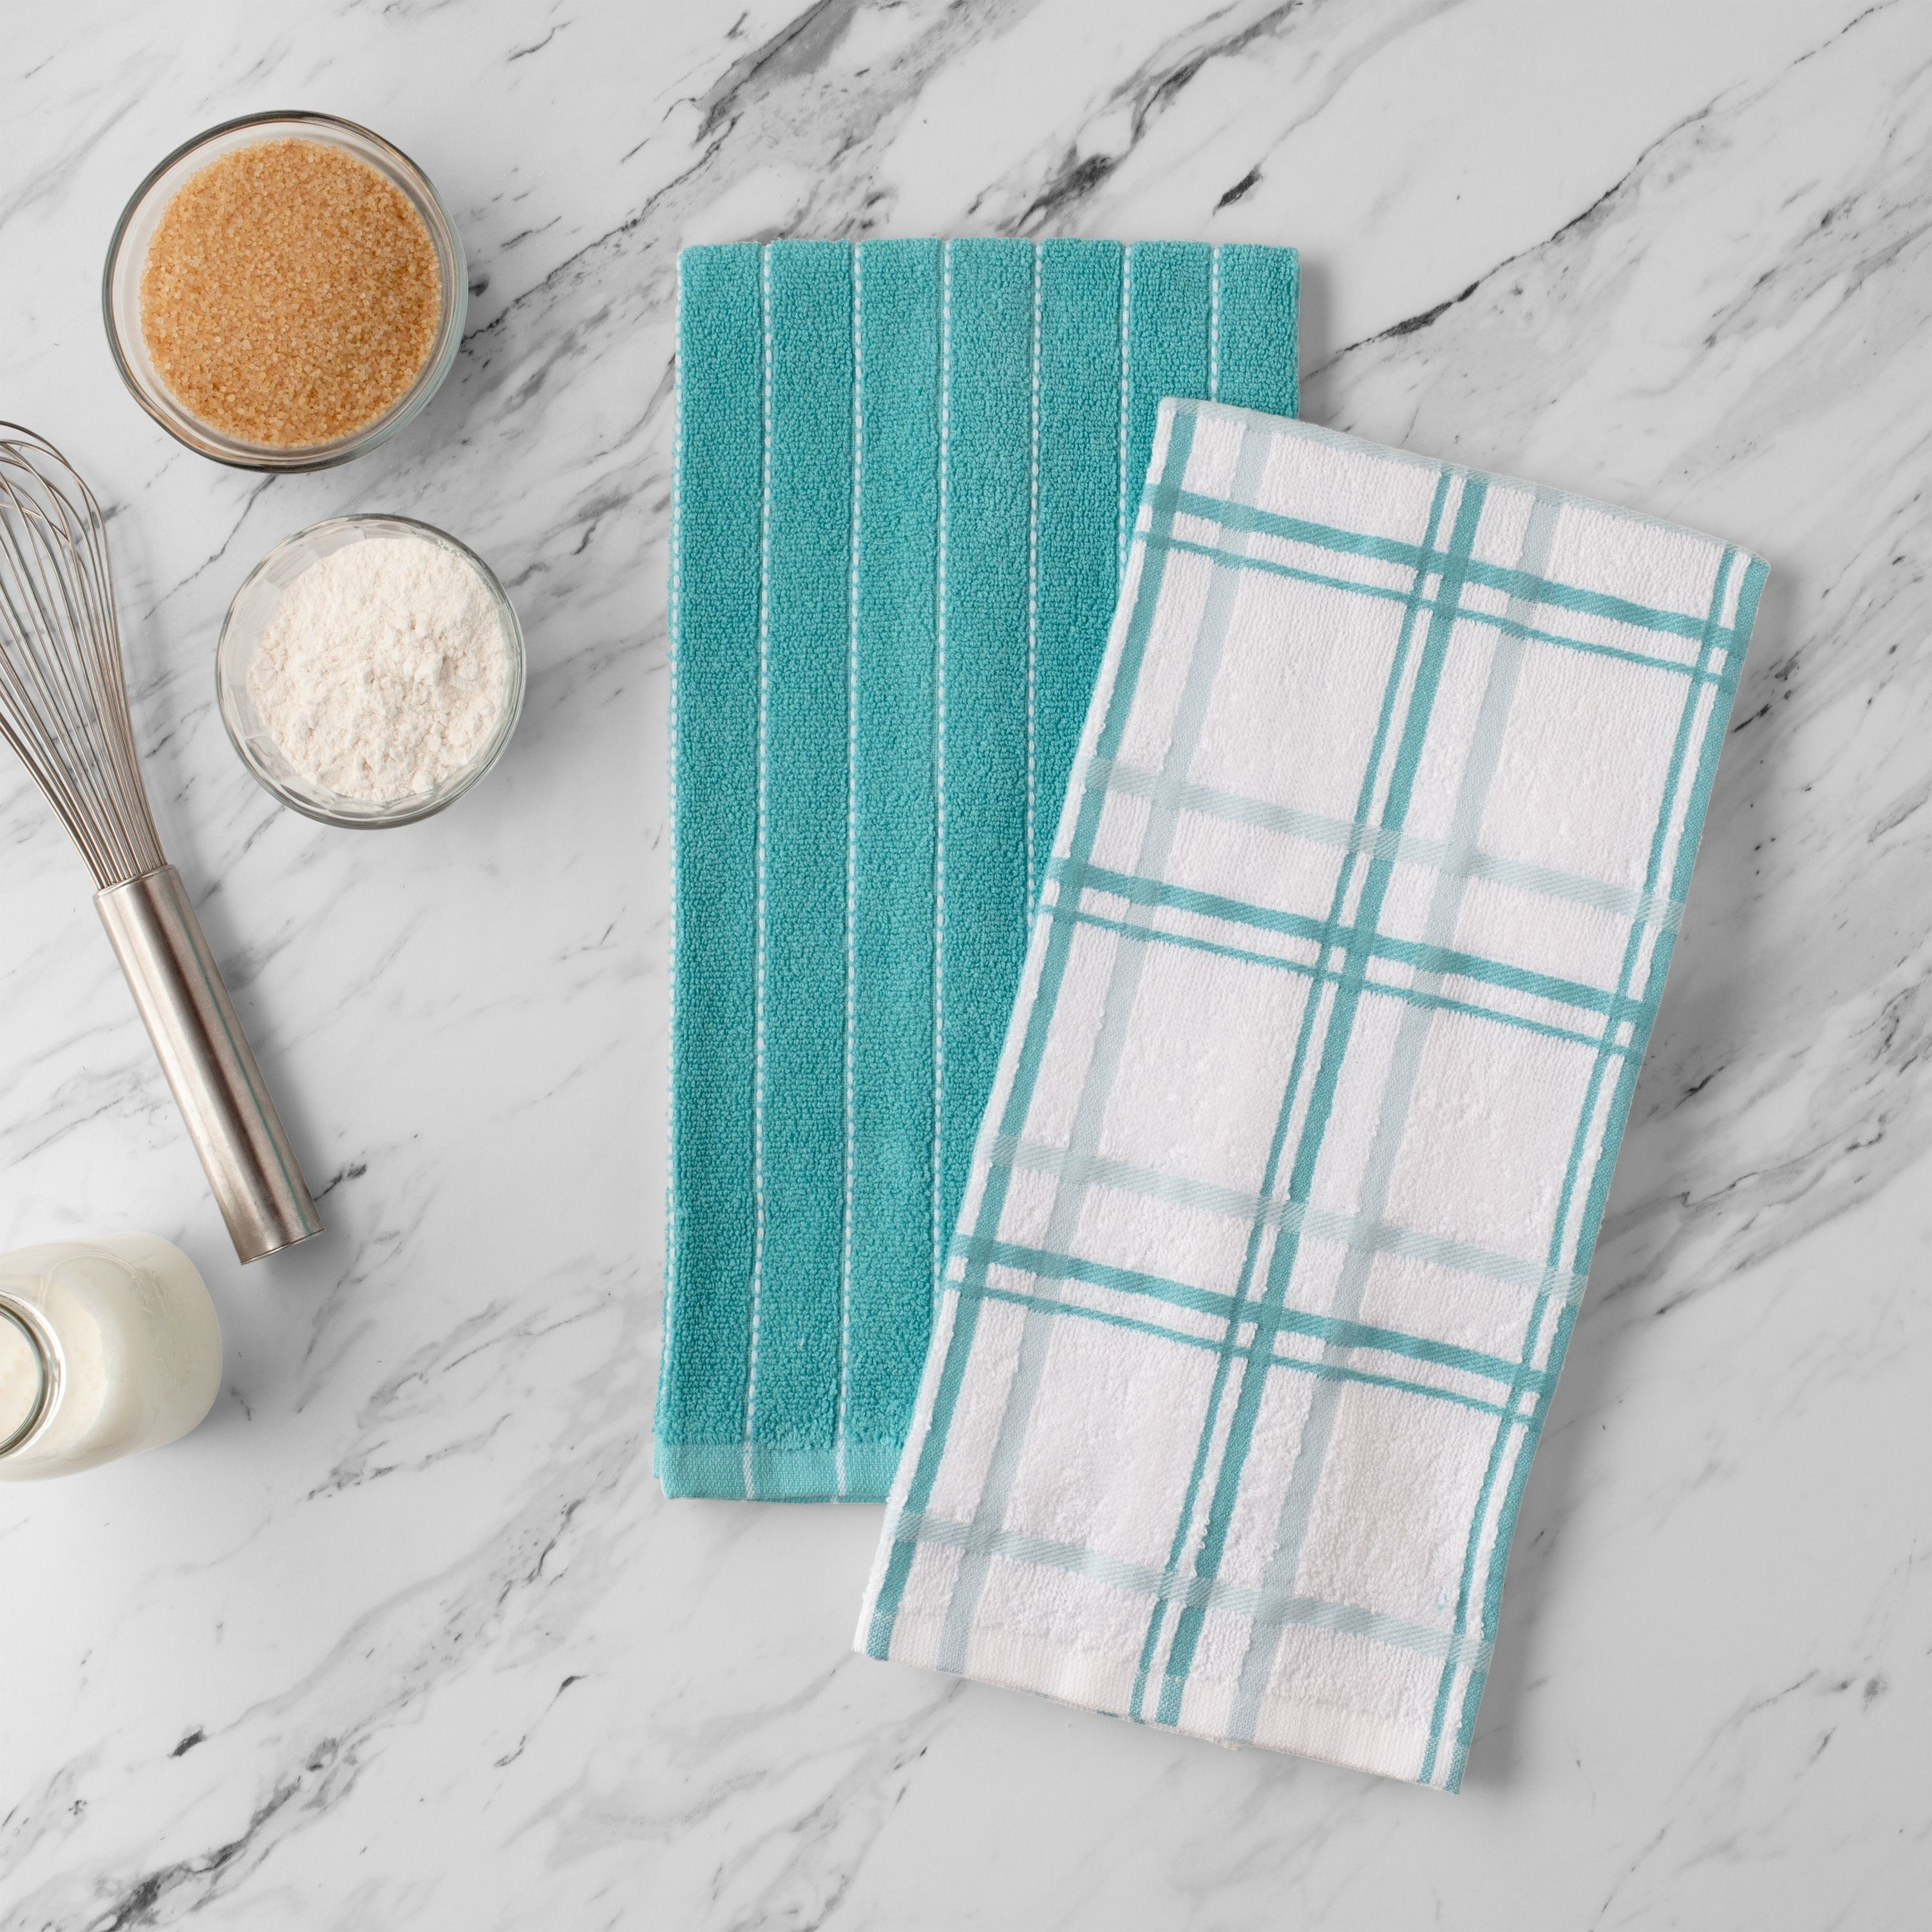 The dish towel set on a marble counter in the color aqua blue